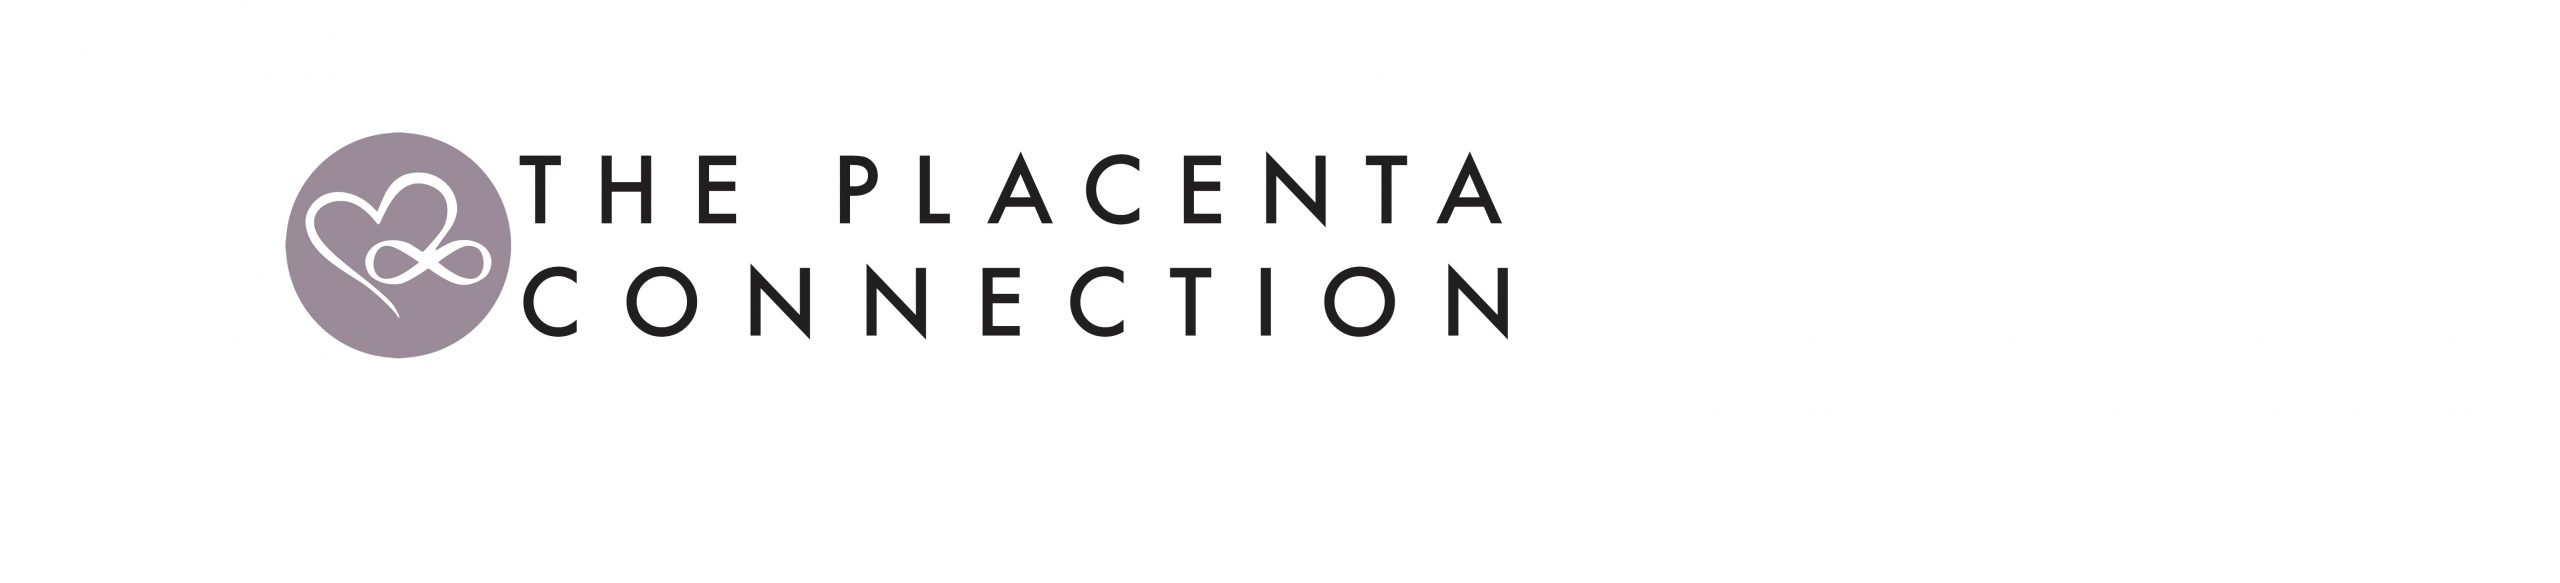 The Placenta Connection